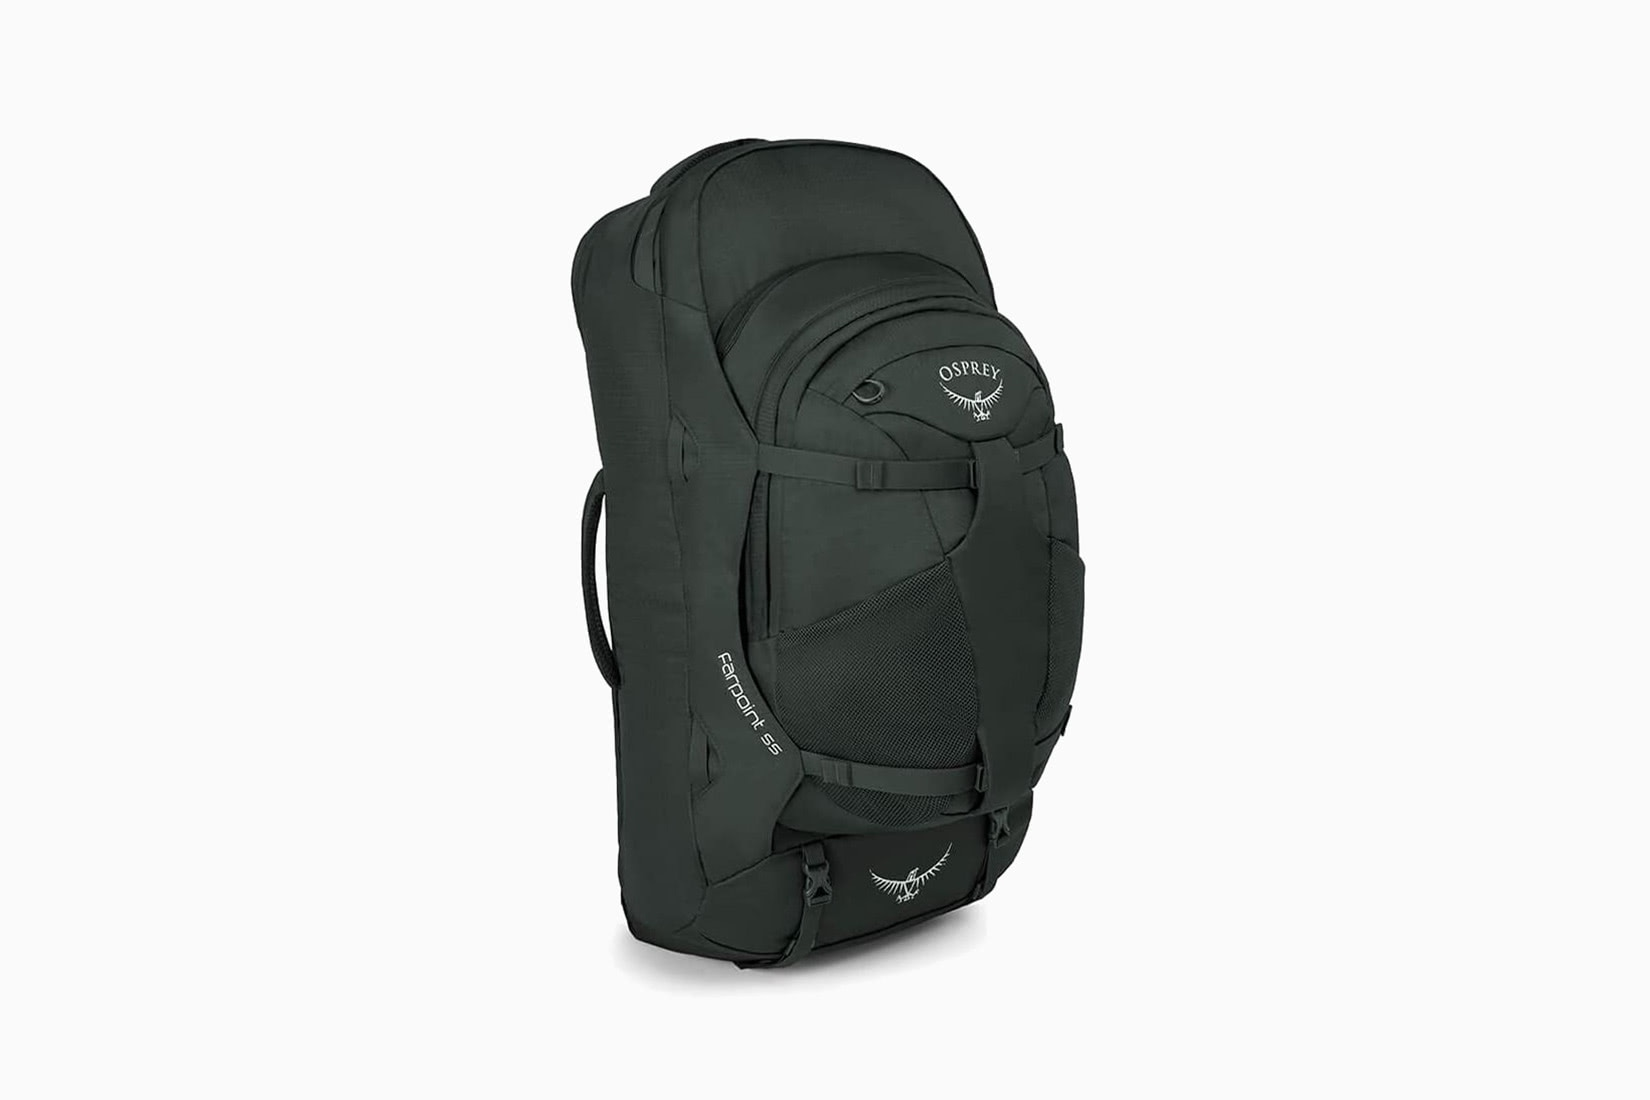 best travel backpack osprey farpoint 55 - Luxe Digital